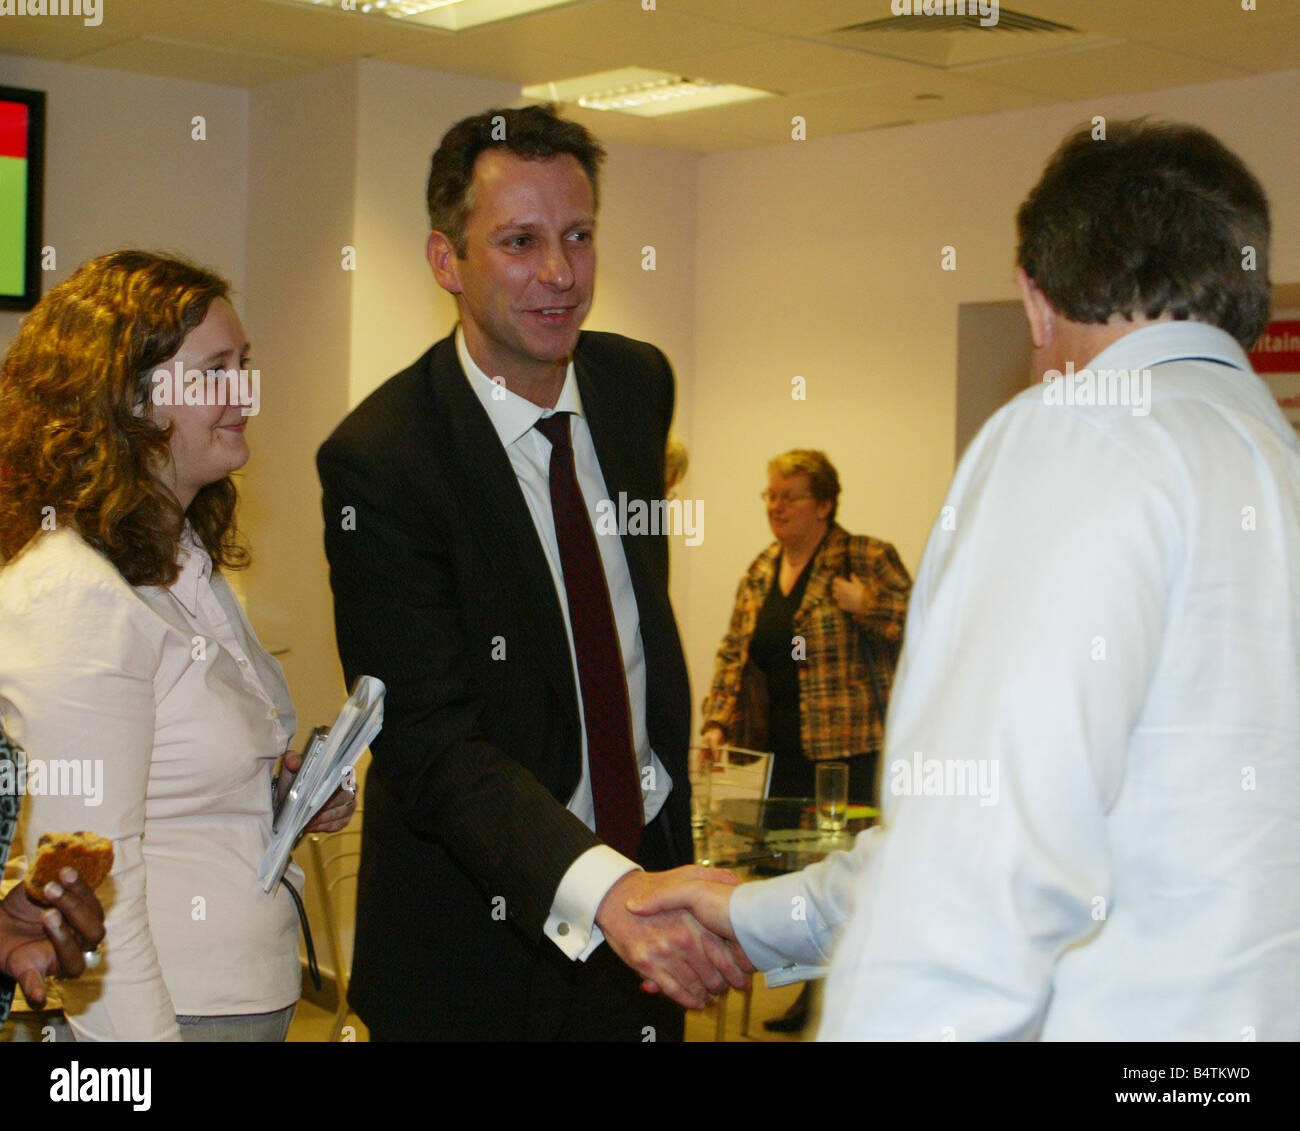 Prime Minister Tony Blair 21st April 2005 With the Mirror s Readers Poll Group at Labour Party election Headquarters - Stock Image